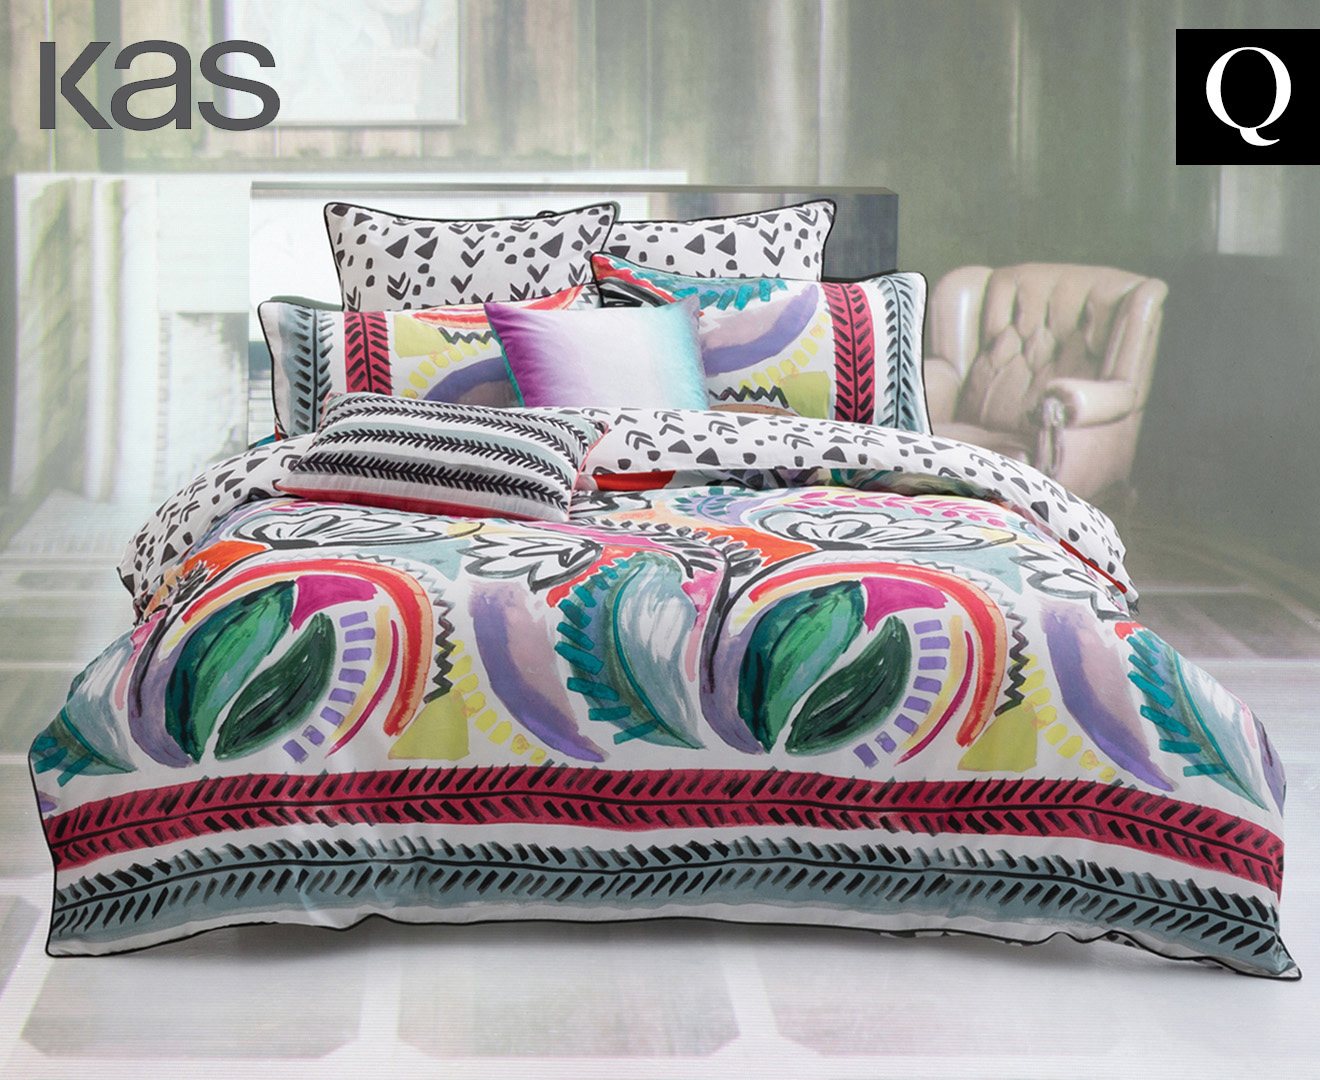 KAS Liliko Queen Bed Quilt Cover Set - Multi